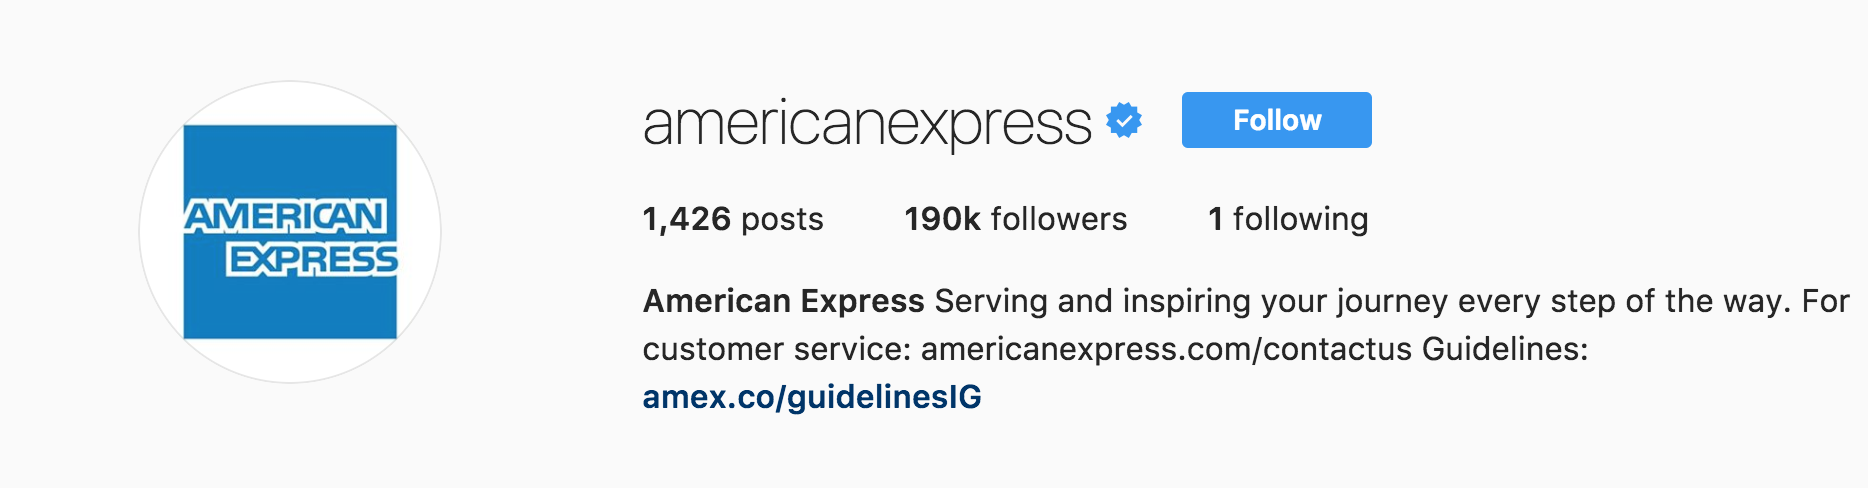 American Express Instagram